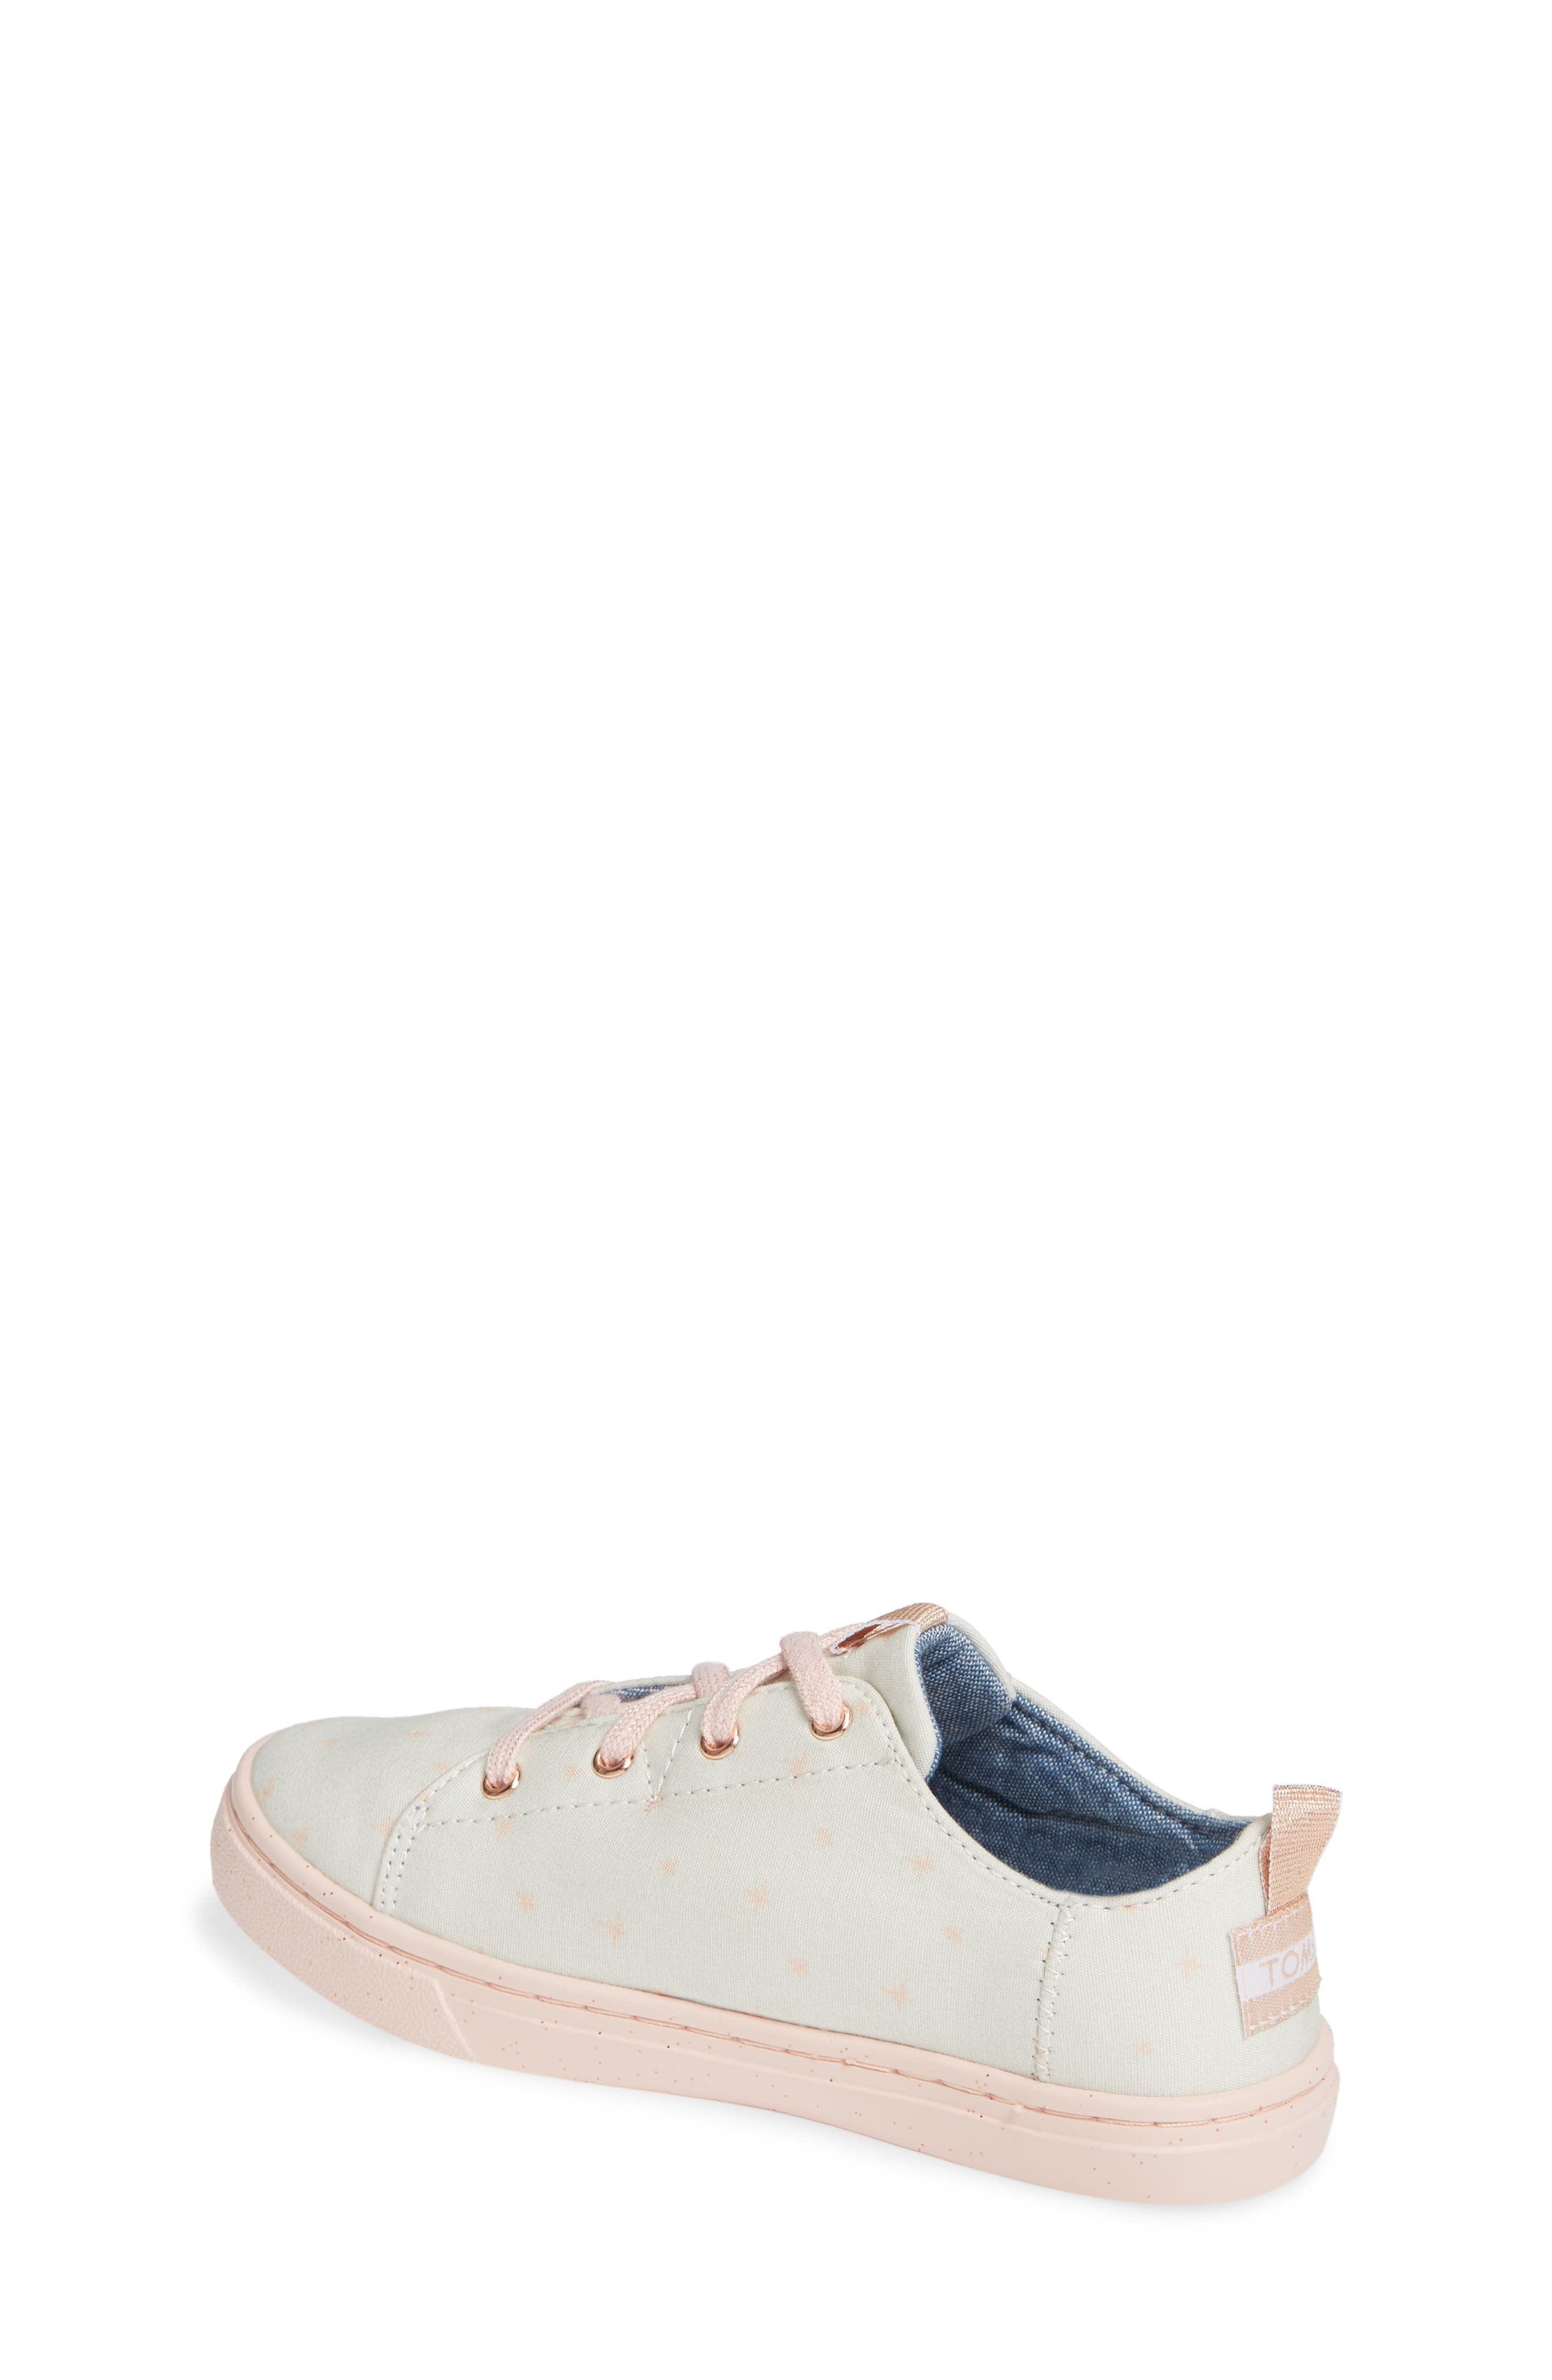 x Disney Lenny Low Top Sneaker,                             Alternate thumbnail 2, color,                             FAIRY GODMOTHER